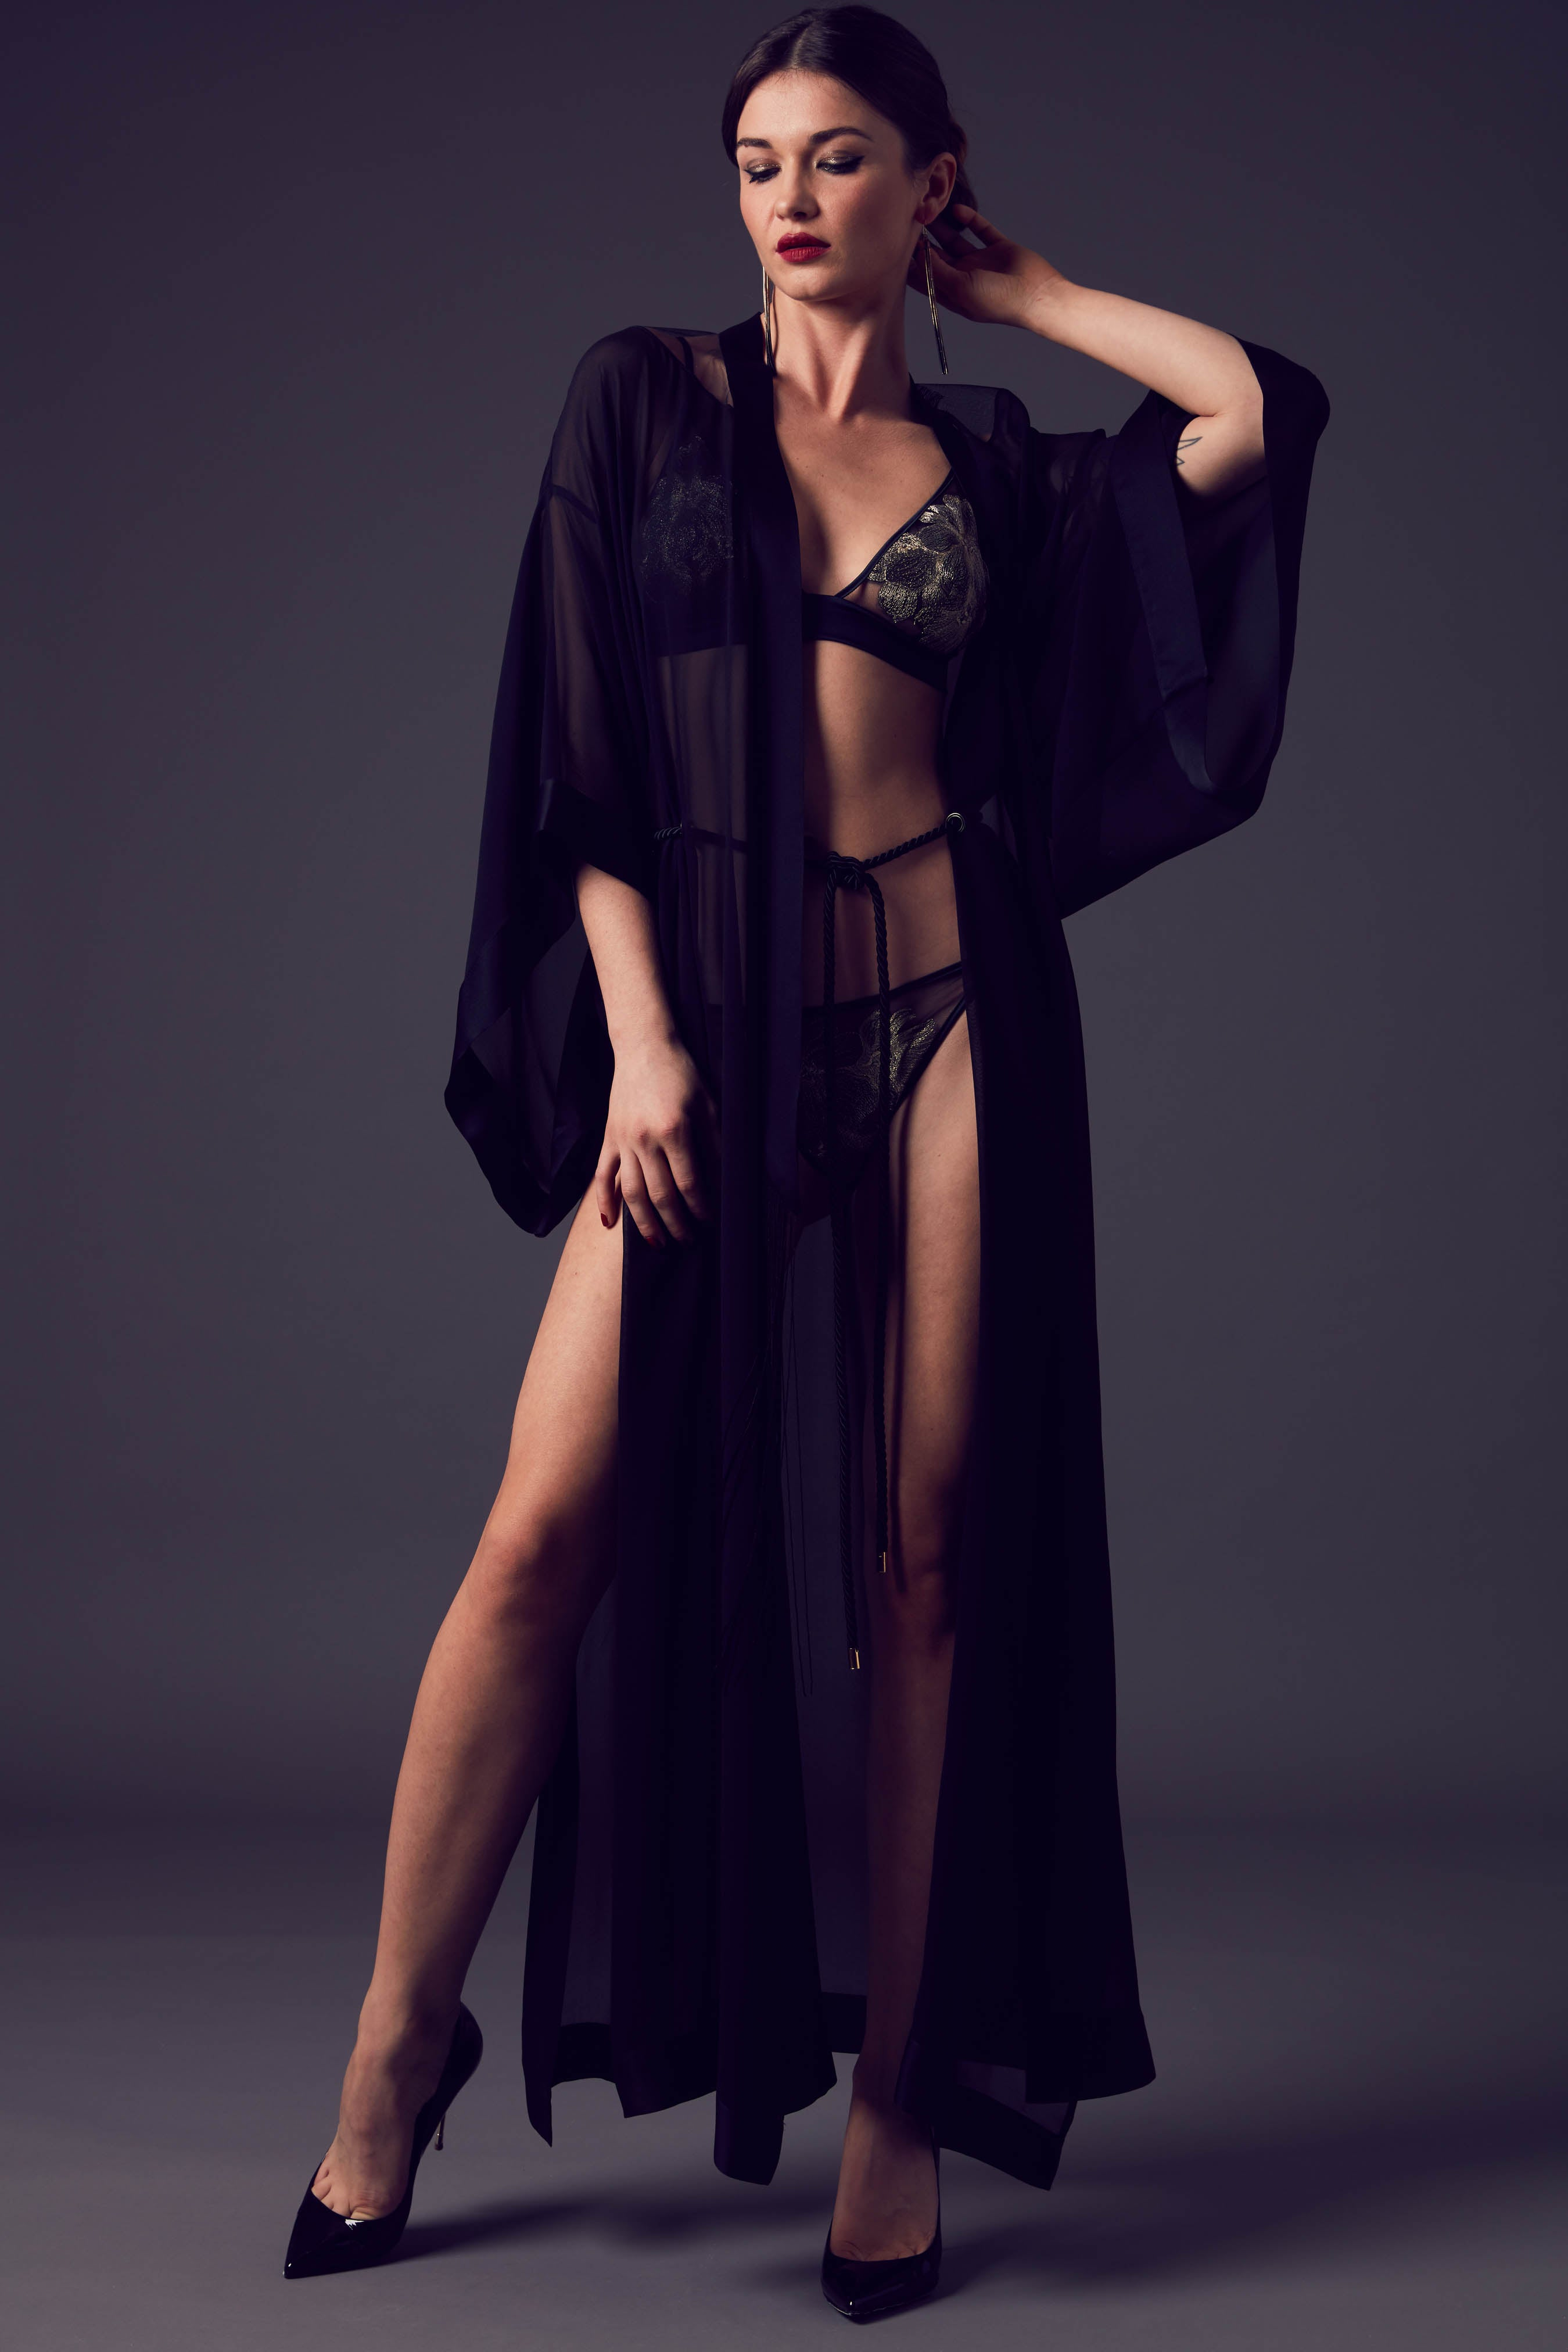 Ayako luxury black sheer kimono with rope tie belt and matching gold lingerie